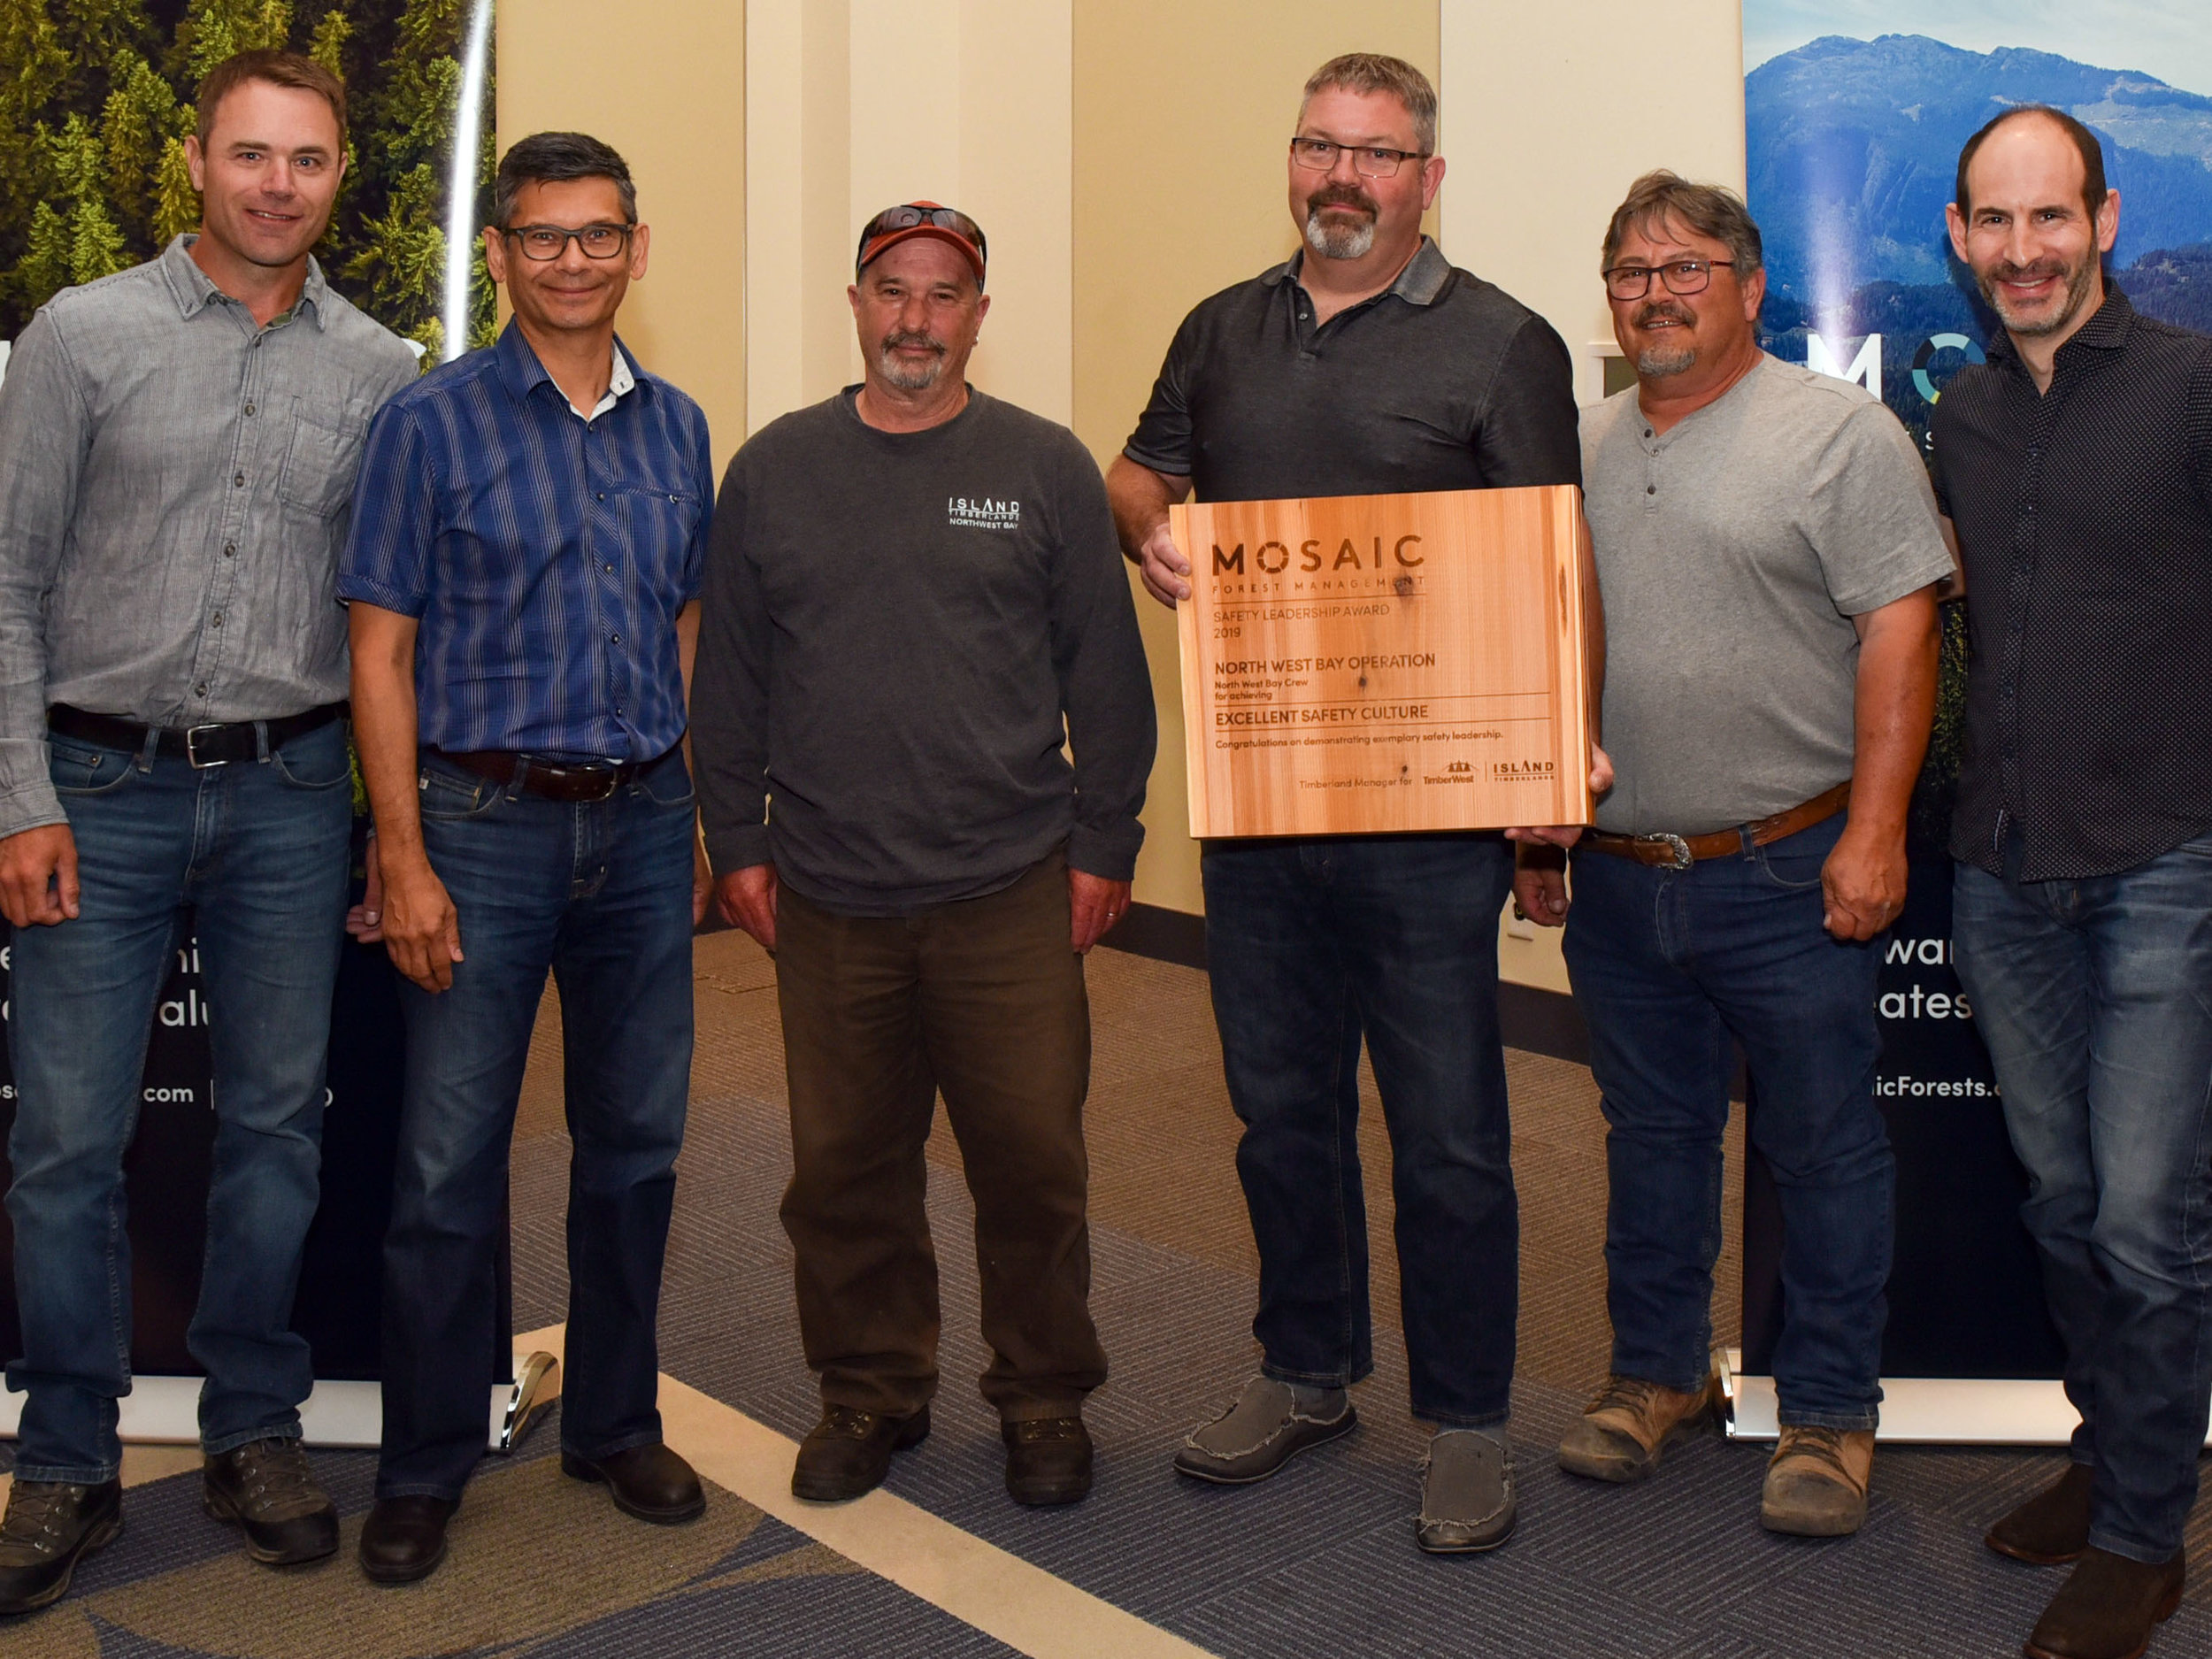 (l to r) Mosaic Forest Management's General Manager, Operations – Central Island, Kevin Ashfield; Mosaic's VP Operations, Mark Leitao; Mark Slocum, Chris Masson and Mazzio Battistuz, of North West Bay Operation; and Jeff Zweig, Mosaic's President and Chief Executive Officer.